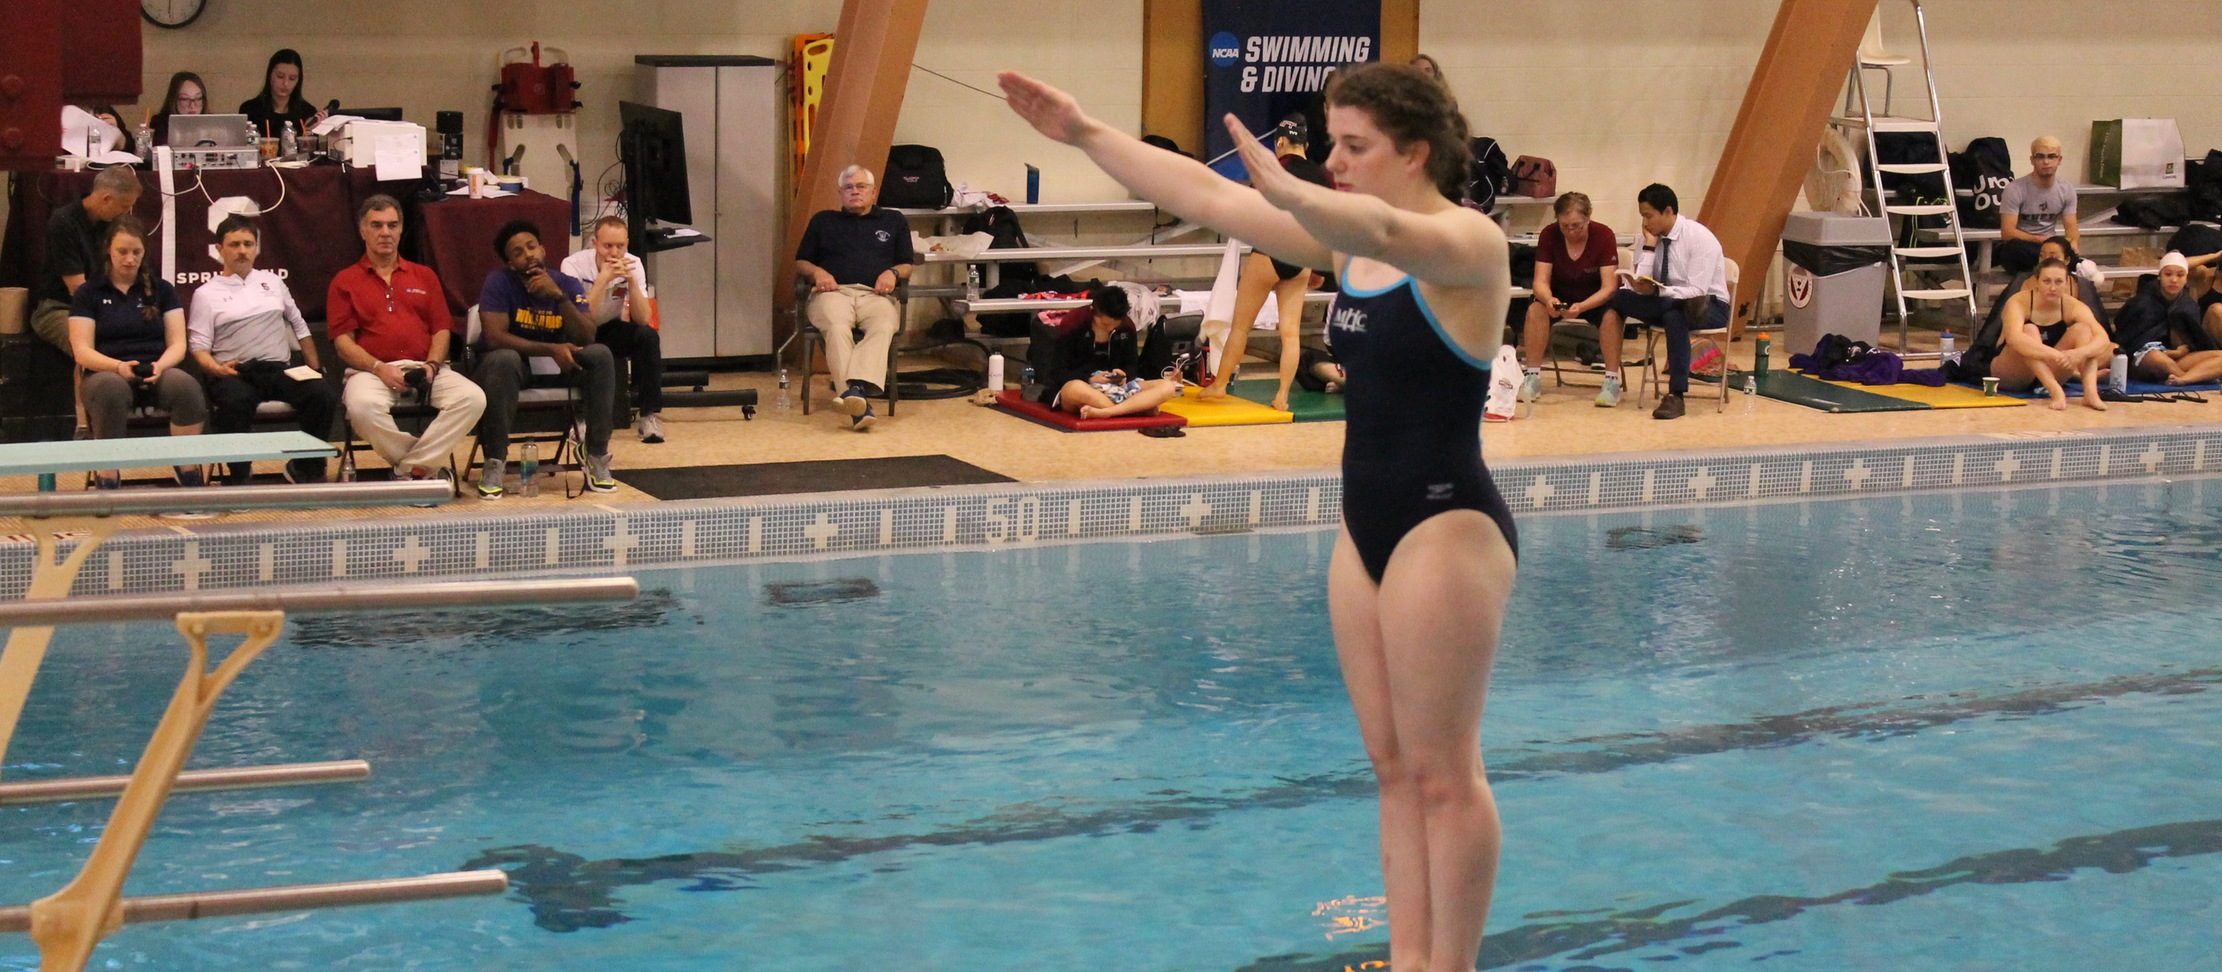 Three Divers Open Competition on One-Meter Board at NCAA Division III Northeast Diving Regionals